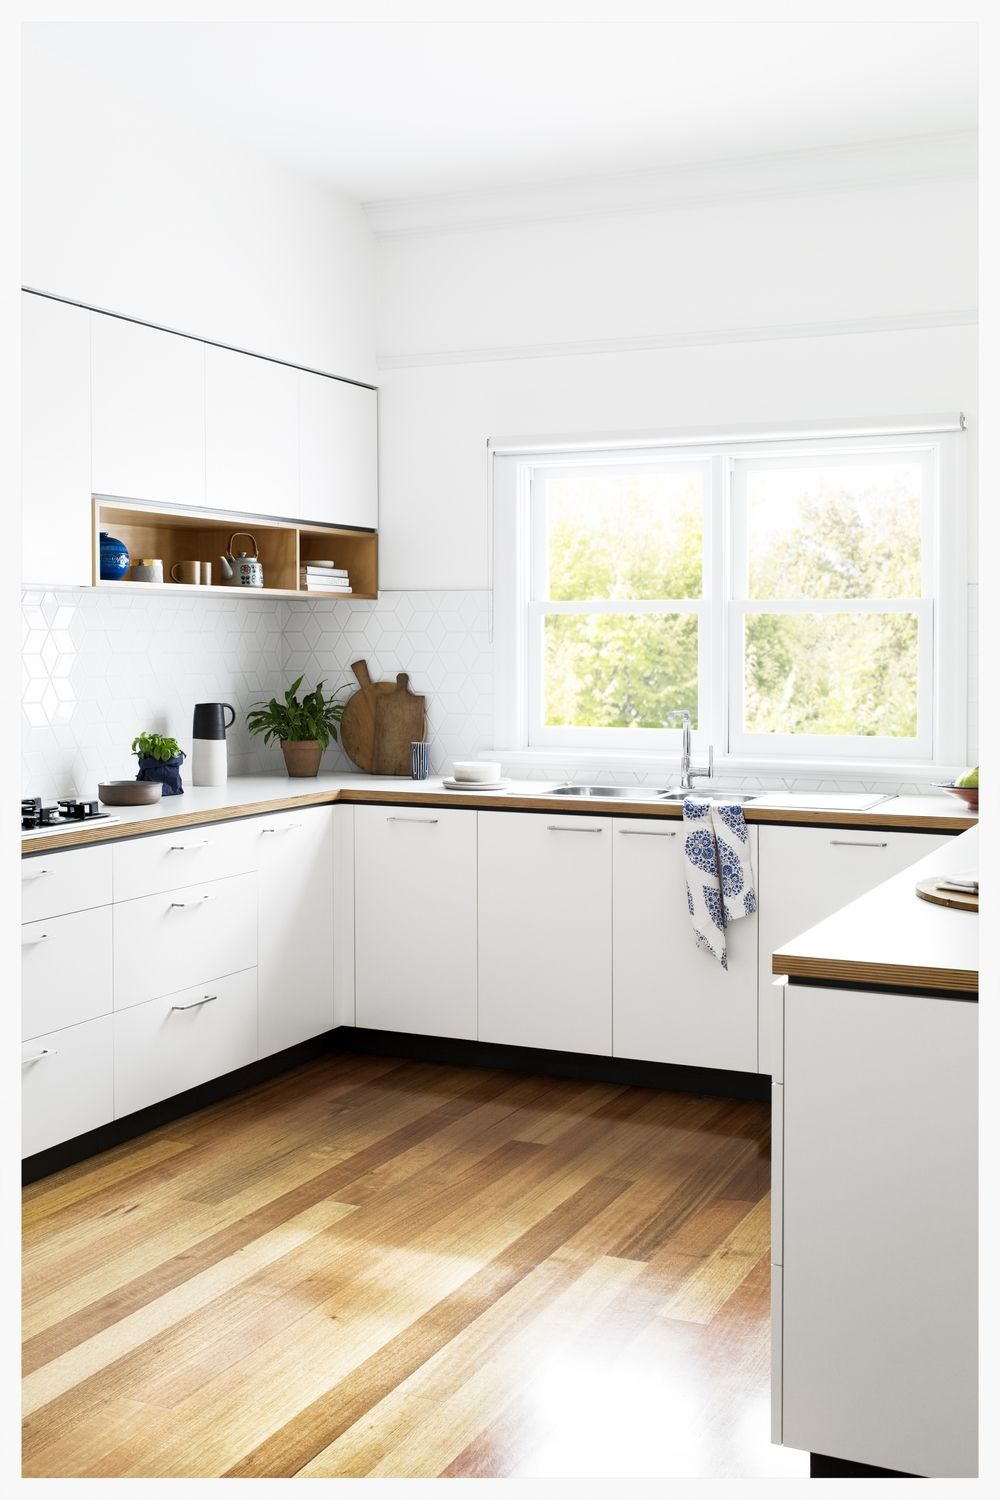 Cantilever kitchen 1, an affordable Australian kitchen ...